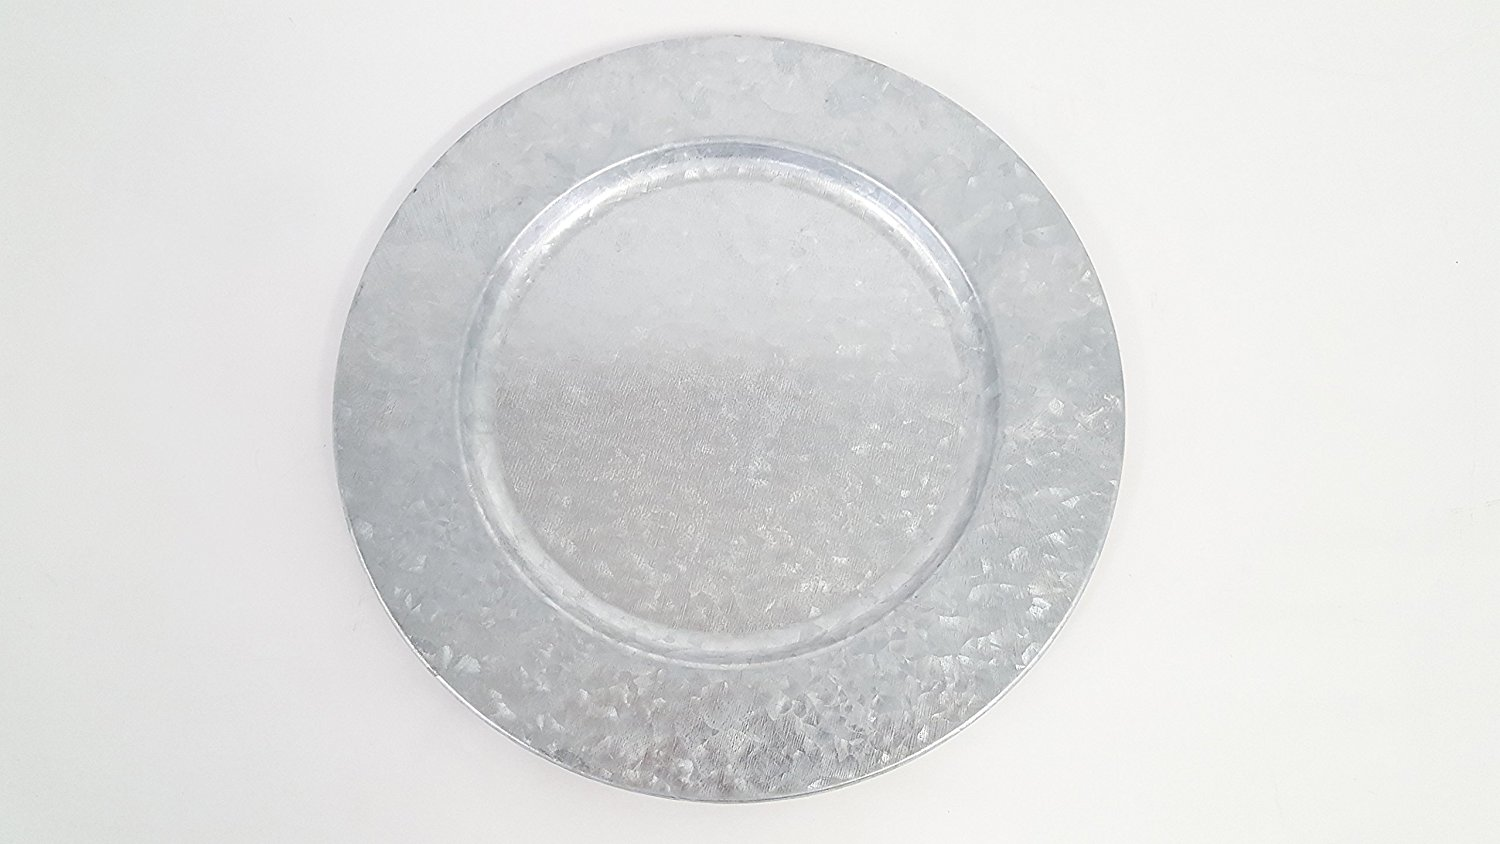 Galvanized Metal Charger Plate Boasting a silver galvanized metal construction with compressed speckles that shine  sc 1 st  Walmart.com & Galvanized Metal Charger Plate Boasting a silver galvanized metal ...